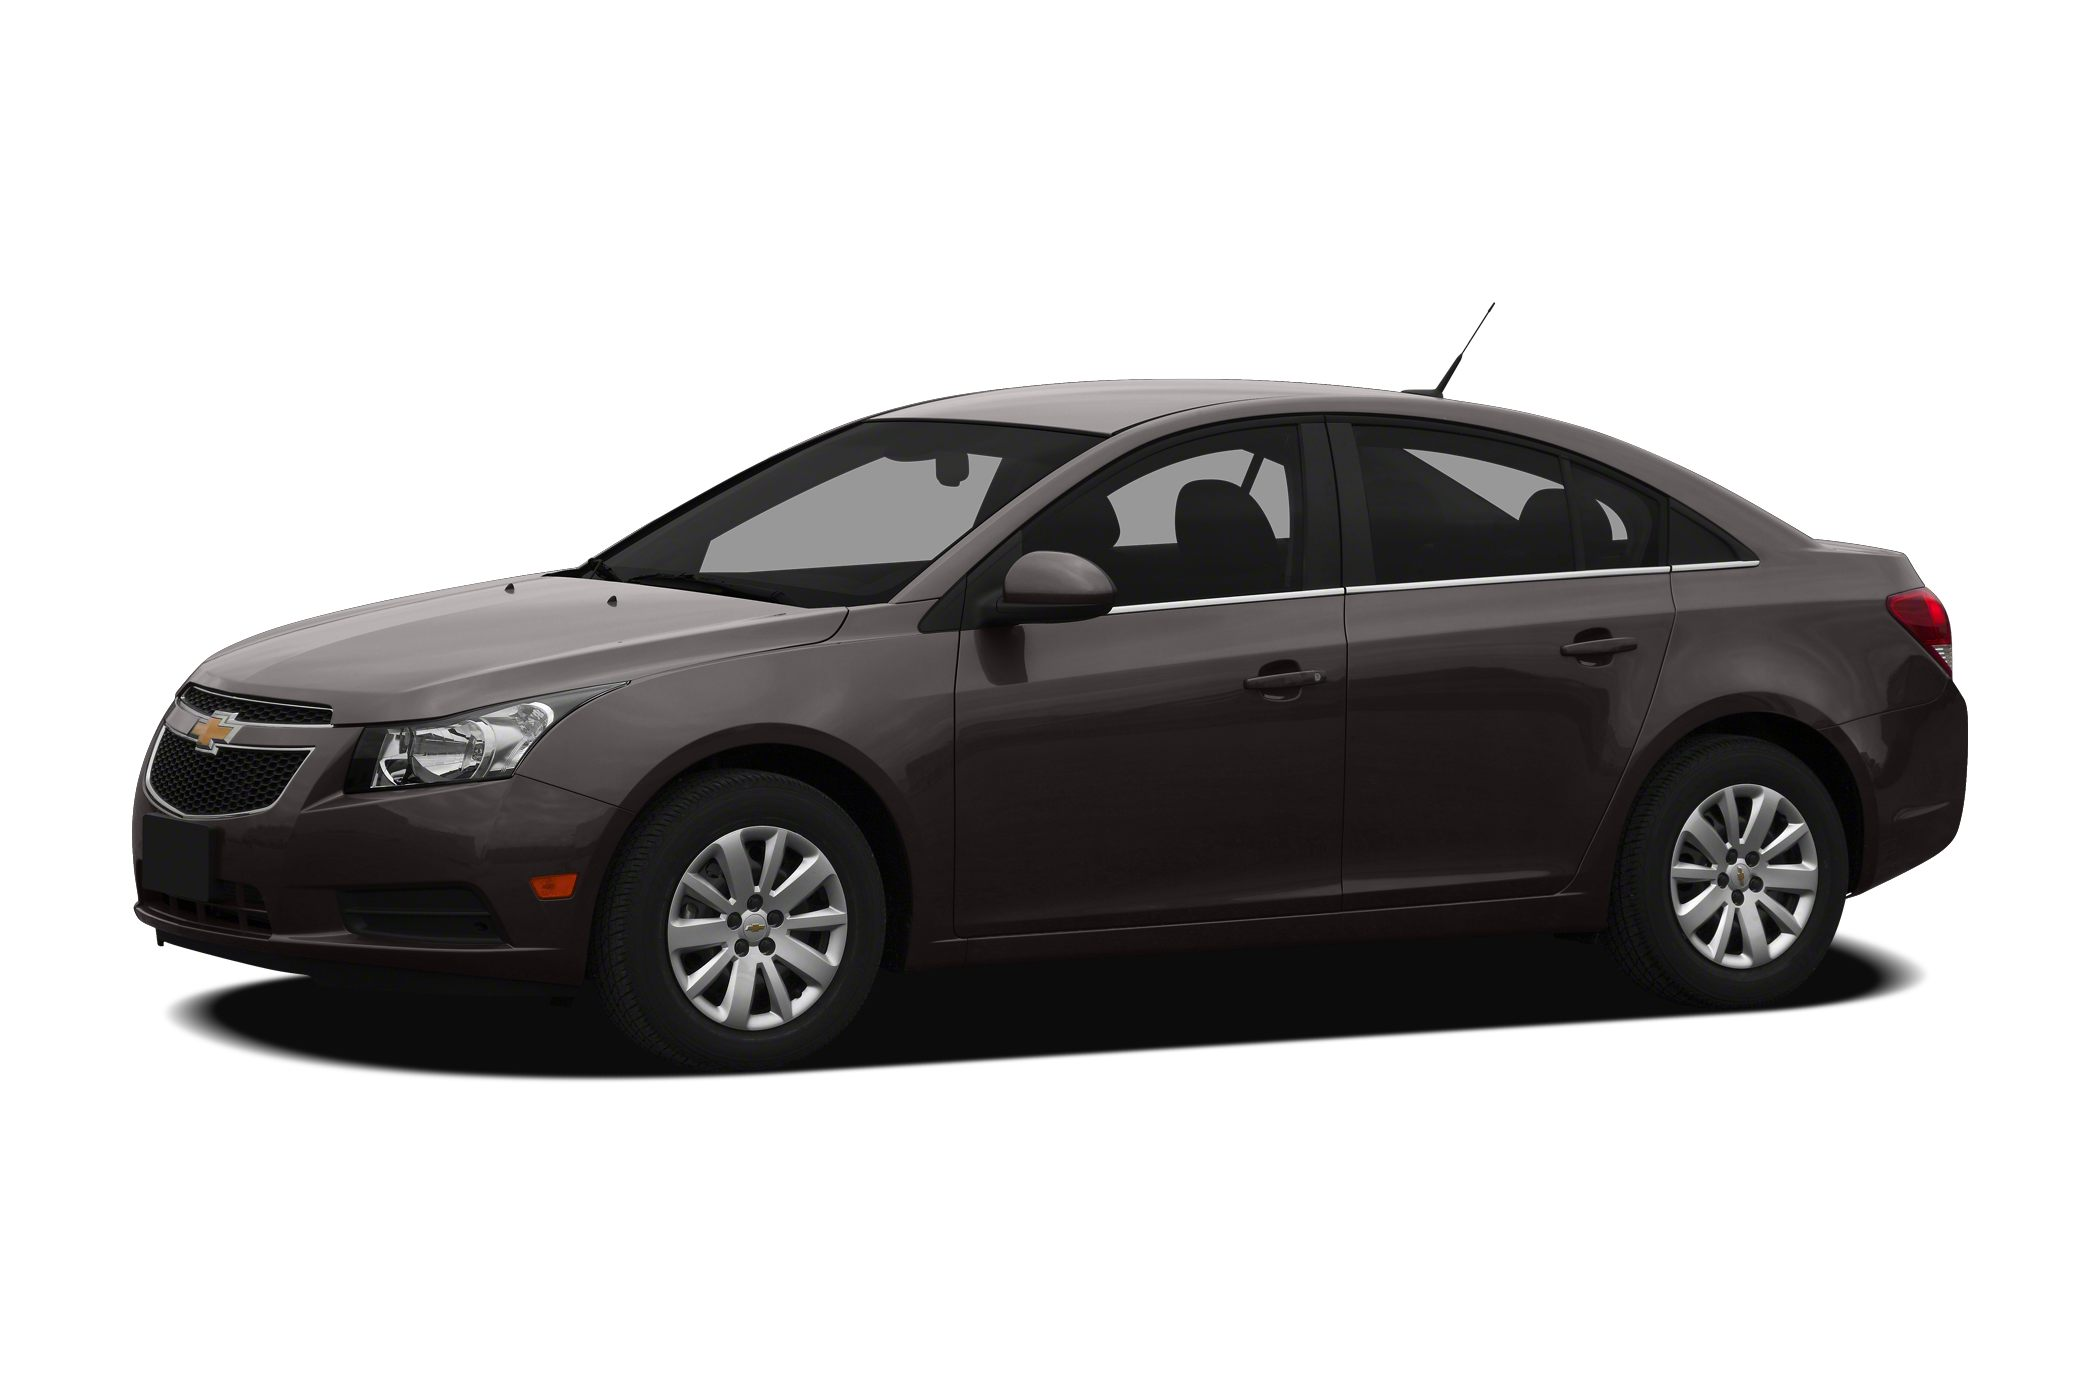 2012 Chevrolet Cruze ECO Sedan for sale in Claremore for $0 with 52,628 miles